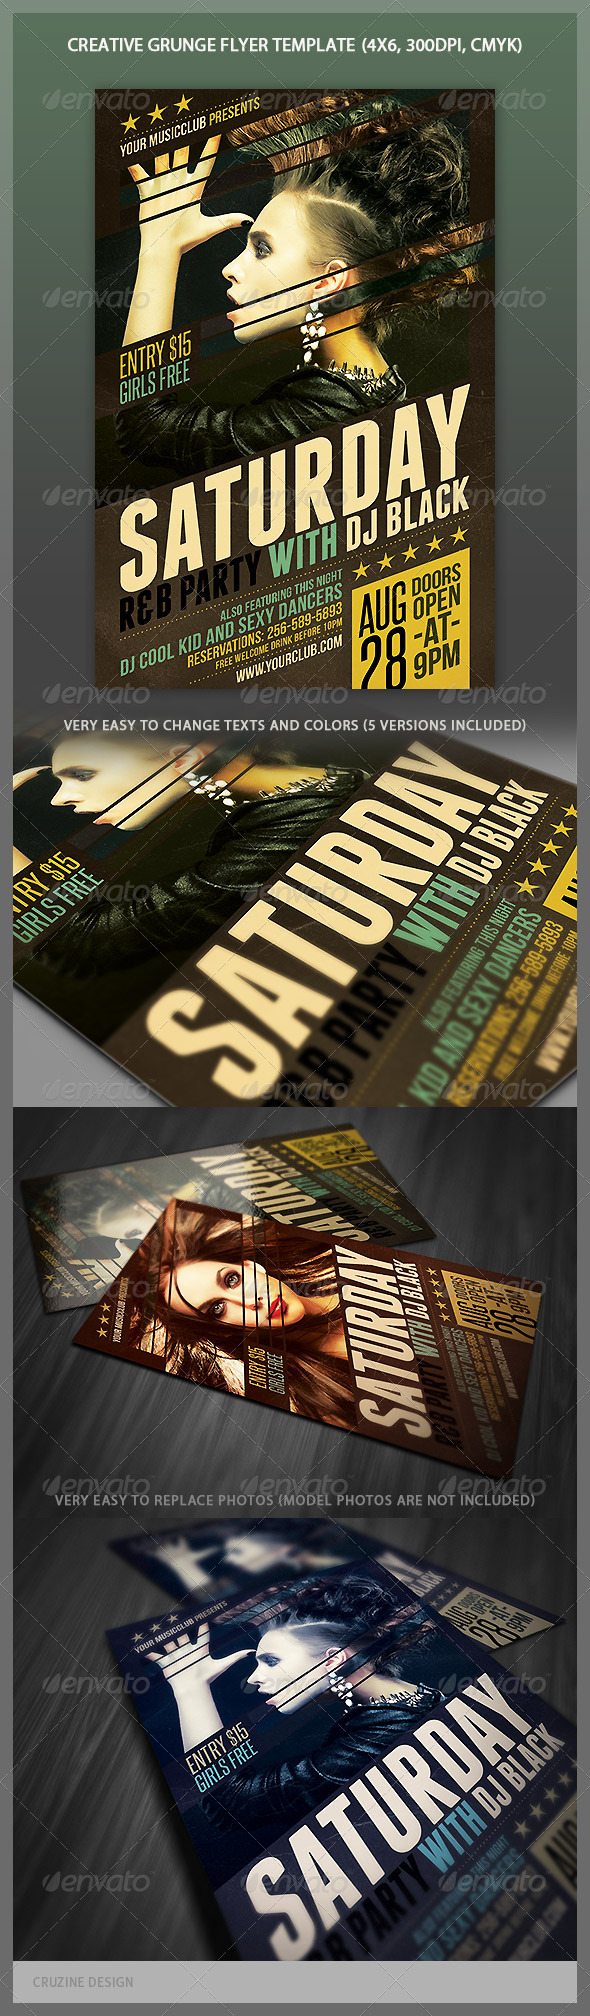 Creative Grunge Flyer - Events Flyers